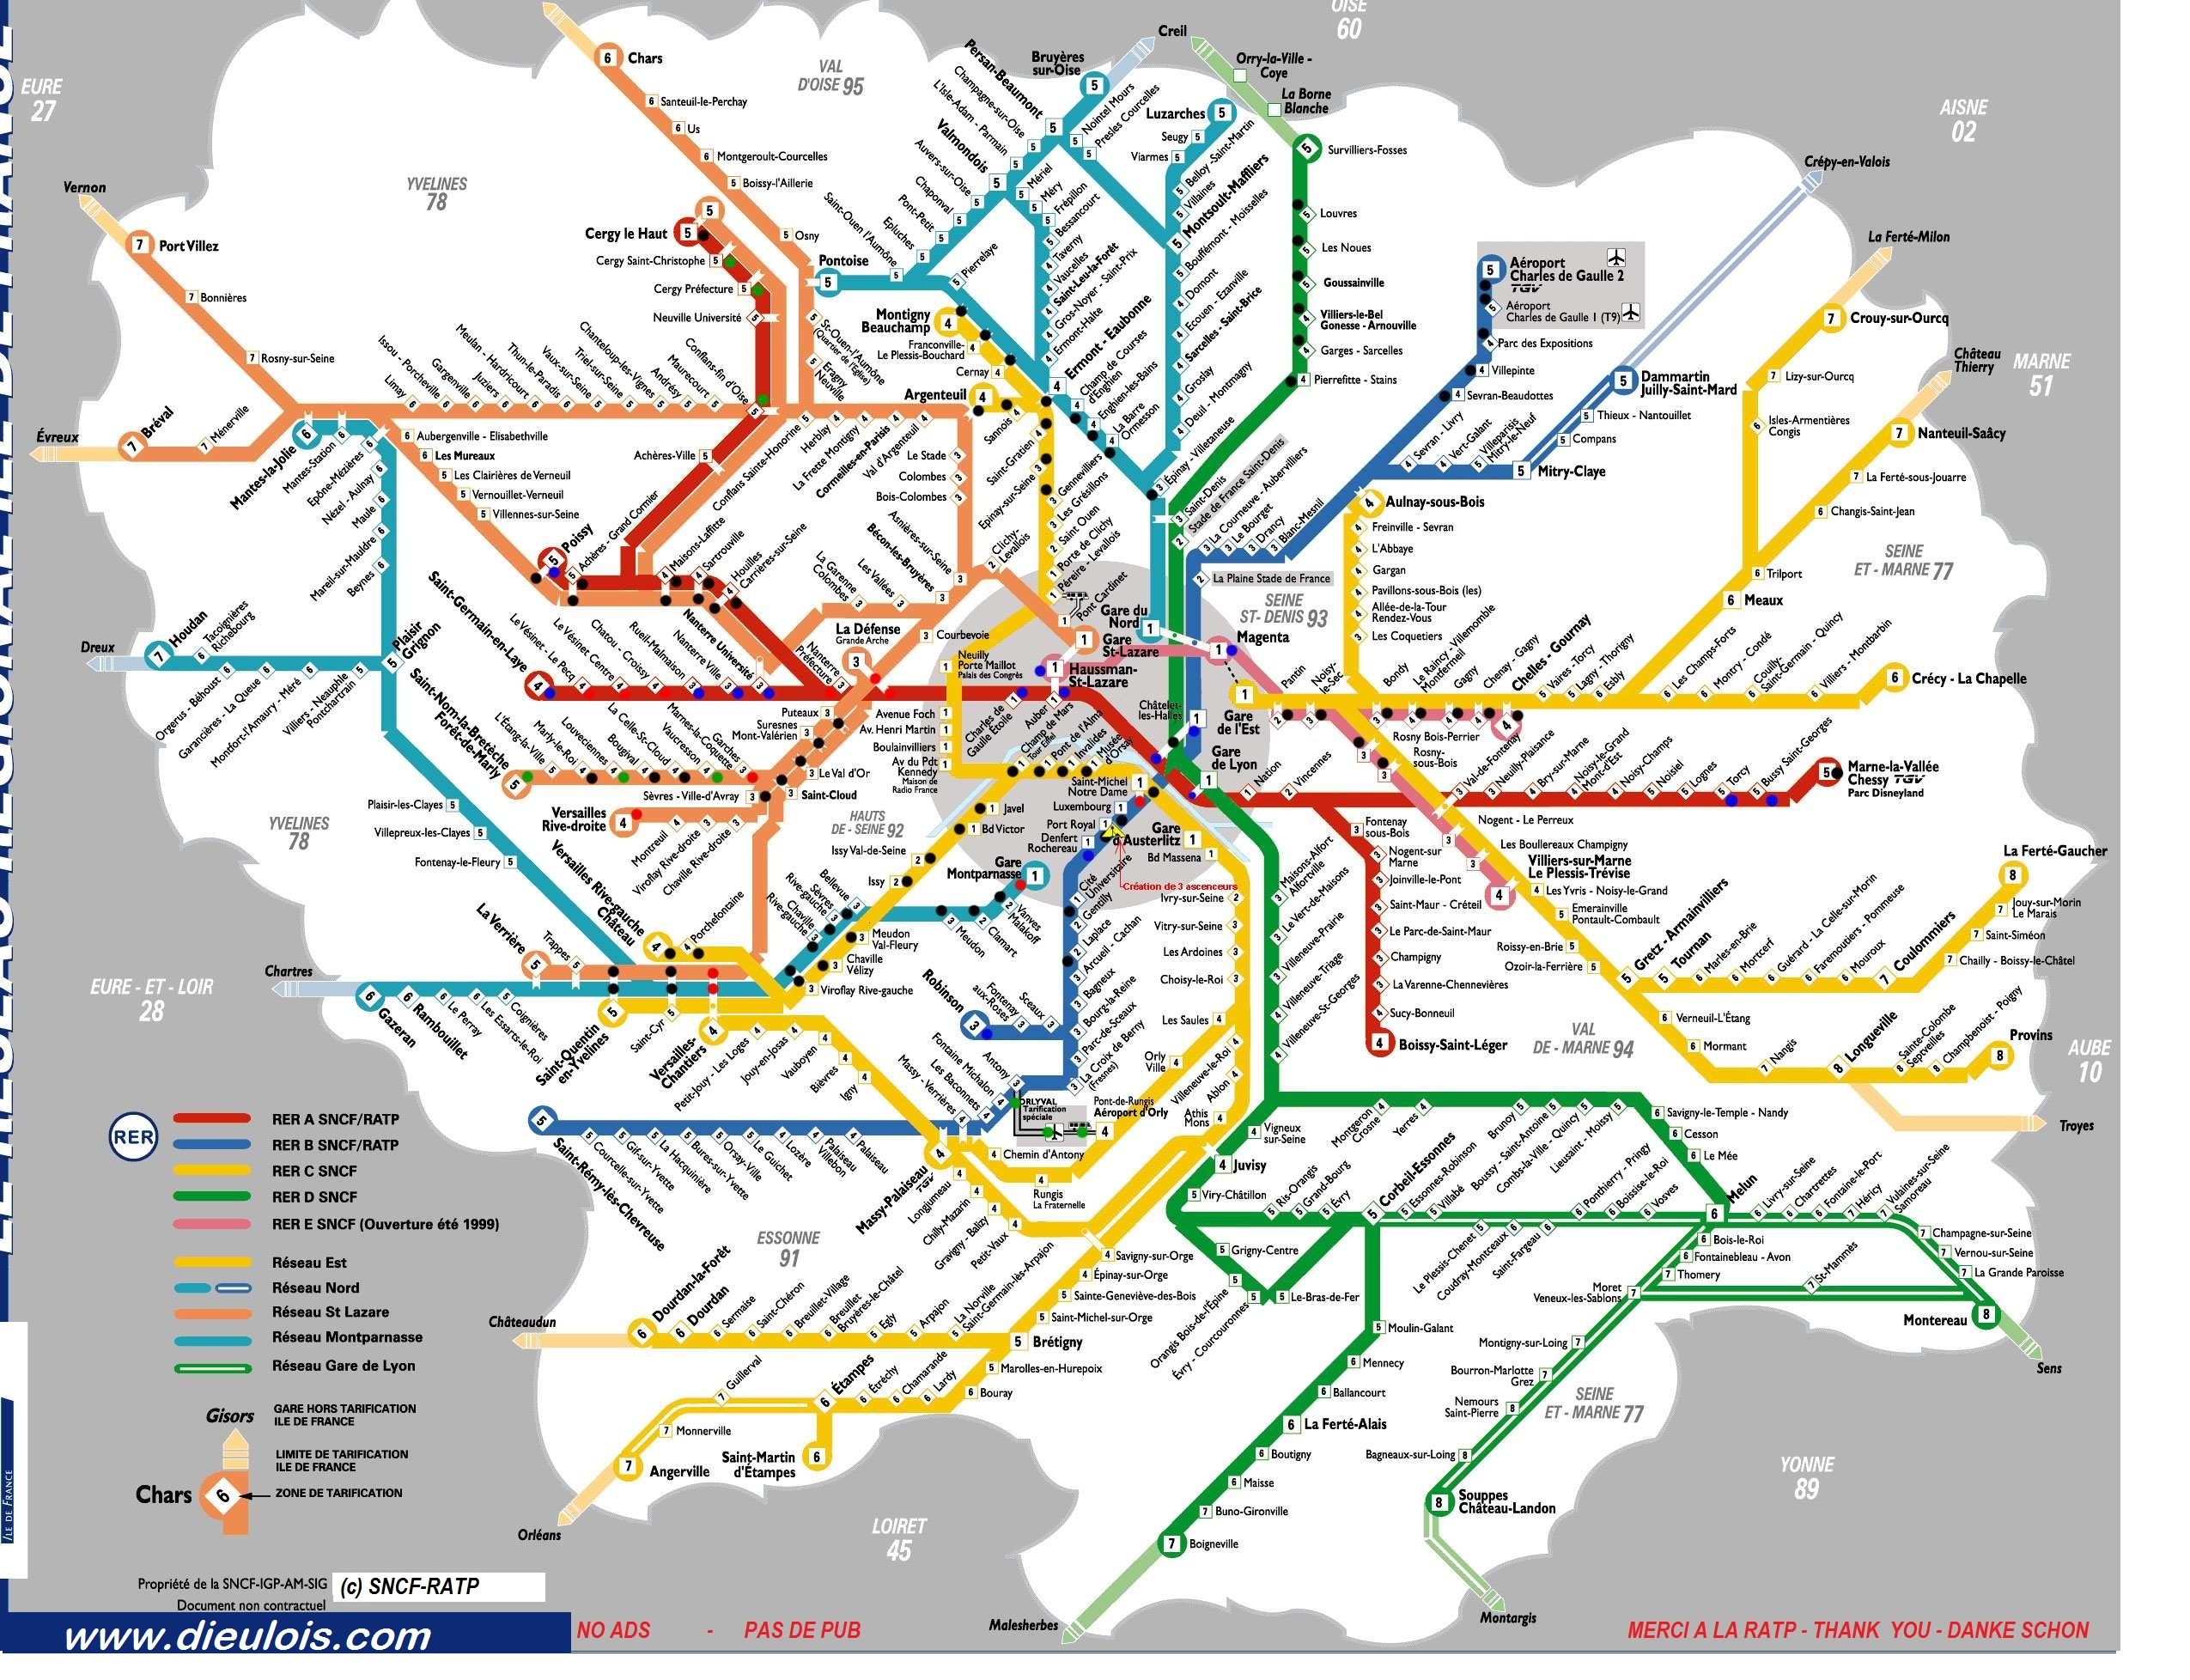 Plan paris rer plan rer metro rer a rer b rer c rer for B b carte france